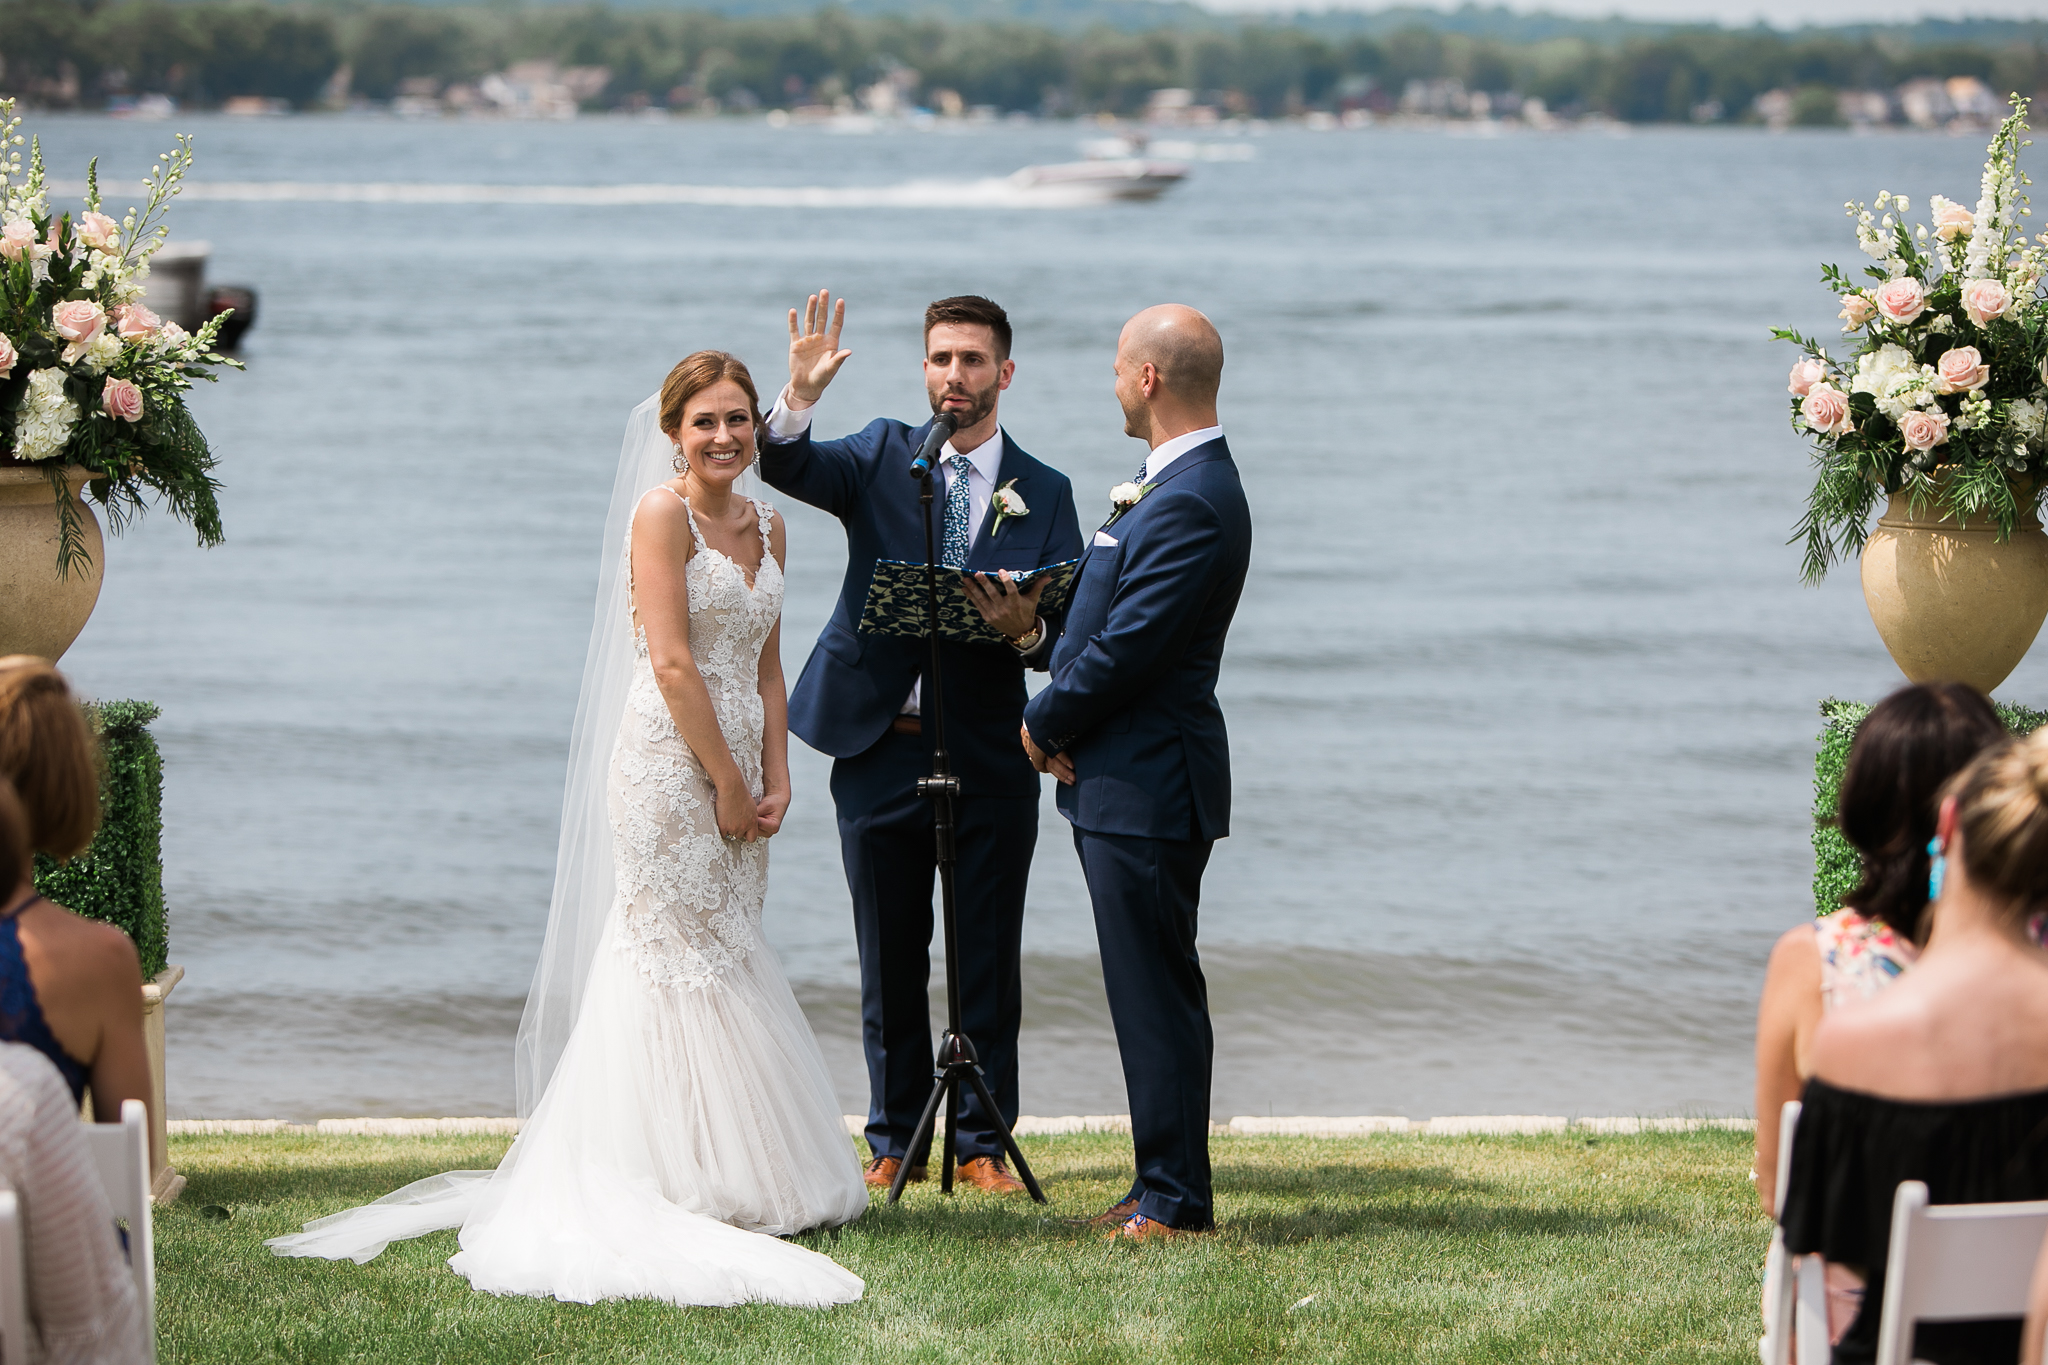 Backyard-Wisconsin-Lake-wedding_084.jpg